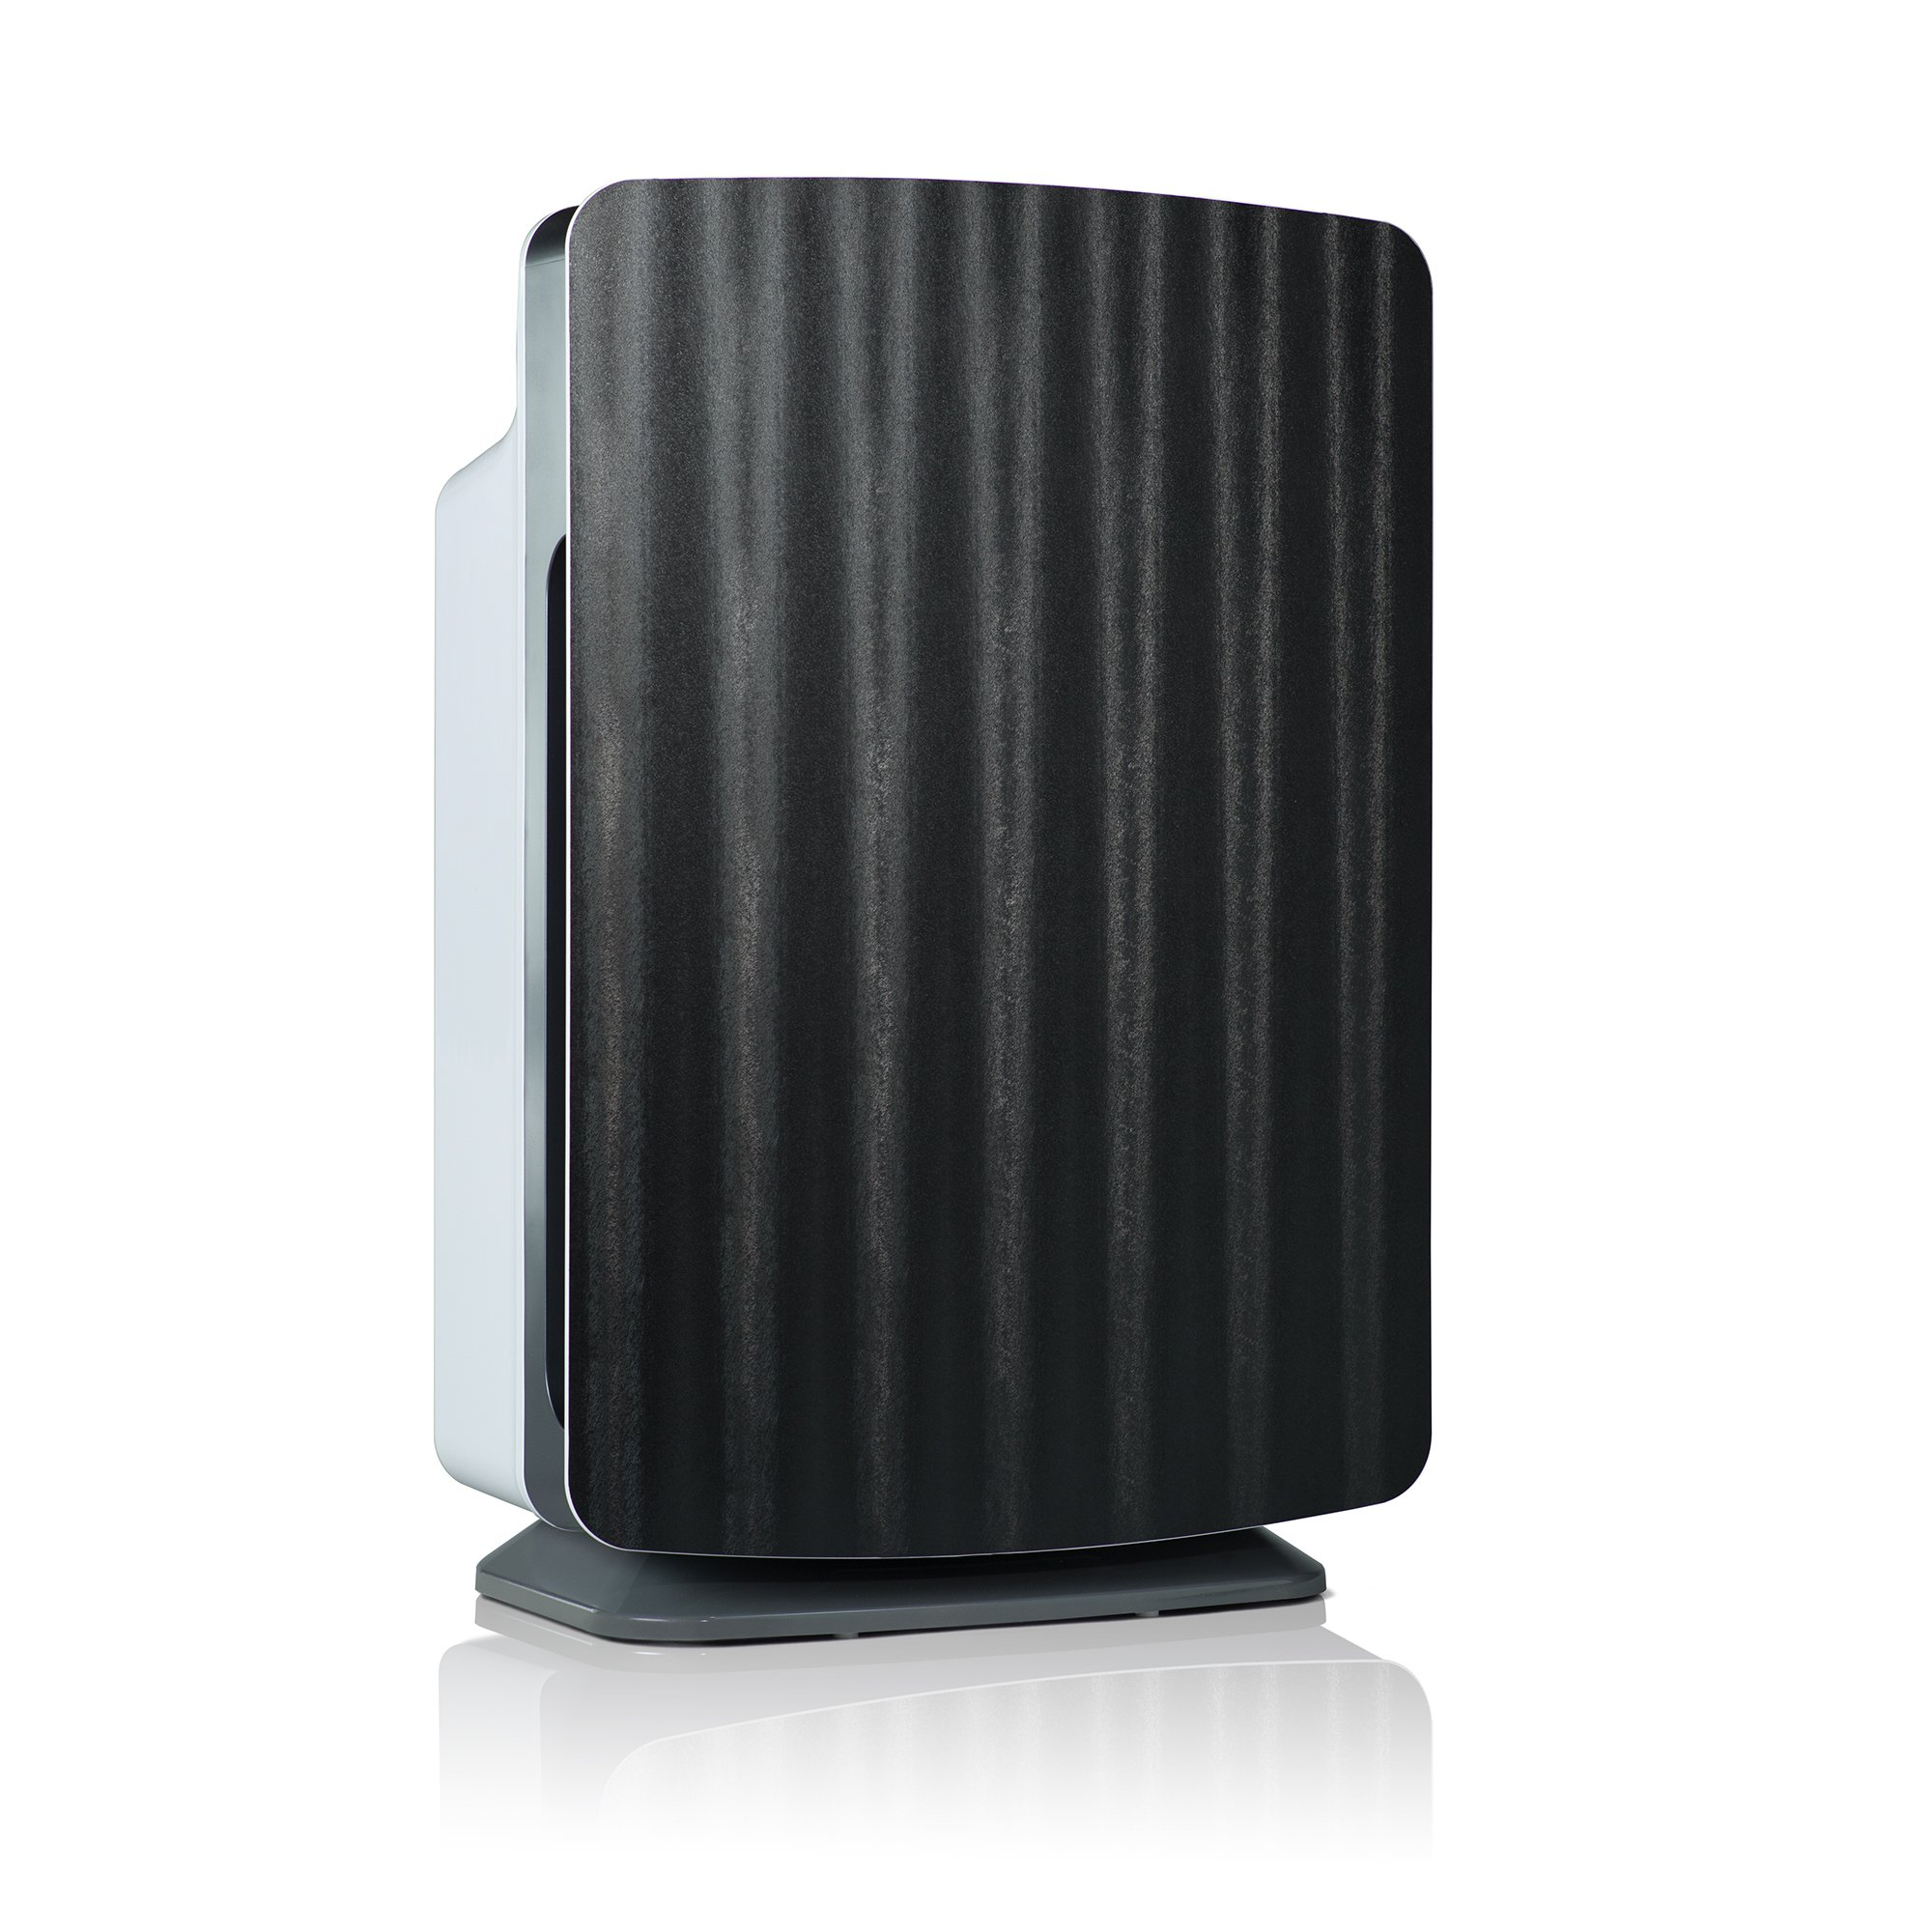 Alen BreatheSmart Classic Customizable Air Purifier with & HEPA Filter for Everyday Allergens and Dust, 1100 Sq. Ft., in Safari Black